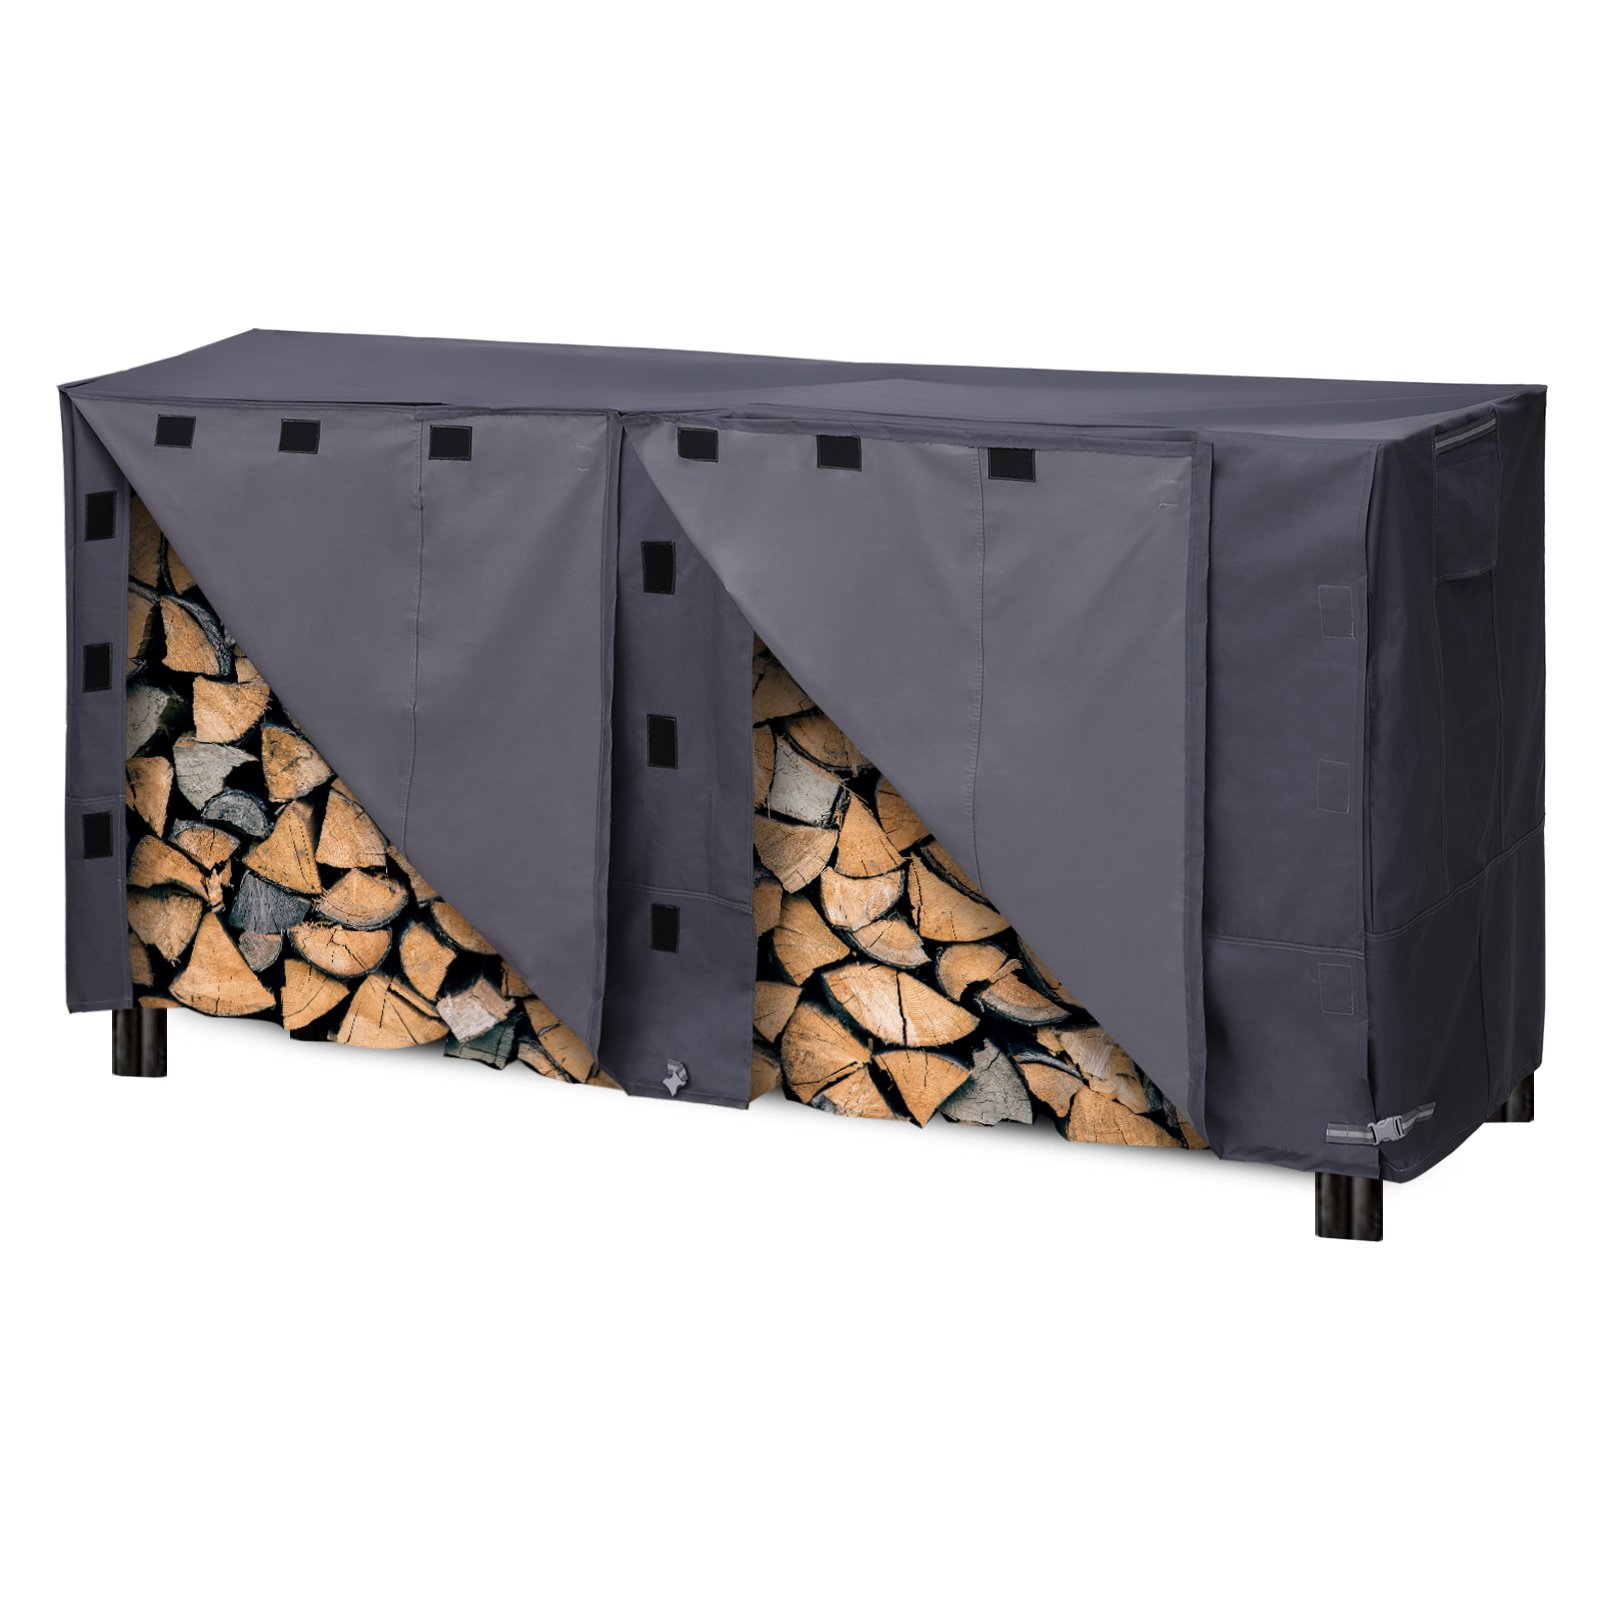 SONGMICS Heavy Duty Log Rack Cover Waterproof Firewood Cover 8ft UGLC96GY